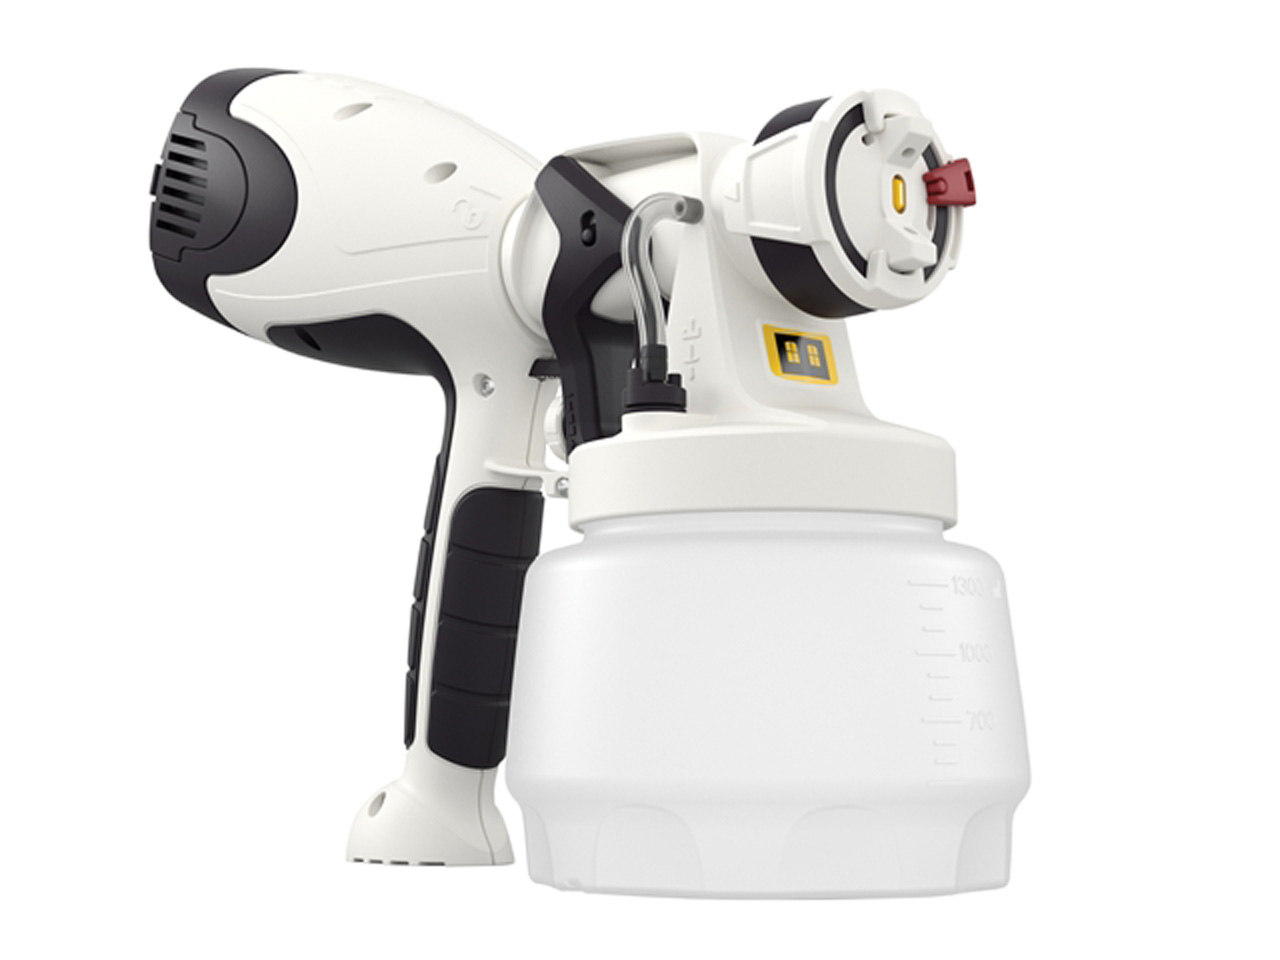 corded power tools paint sprayers. Black Bedroom Furniture Sets. Home Design Ideas